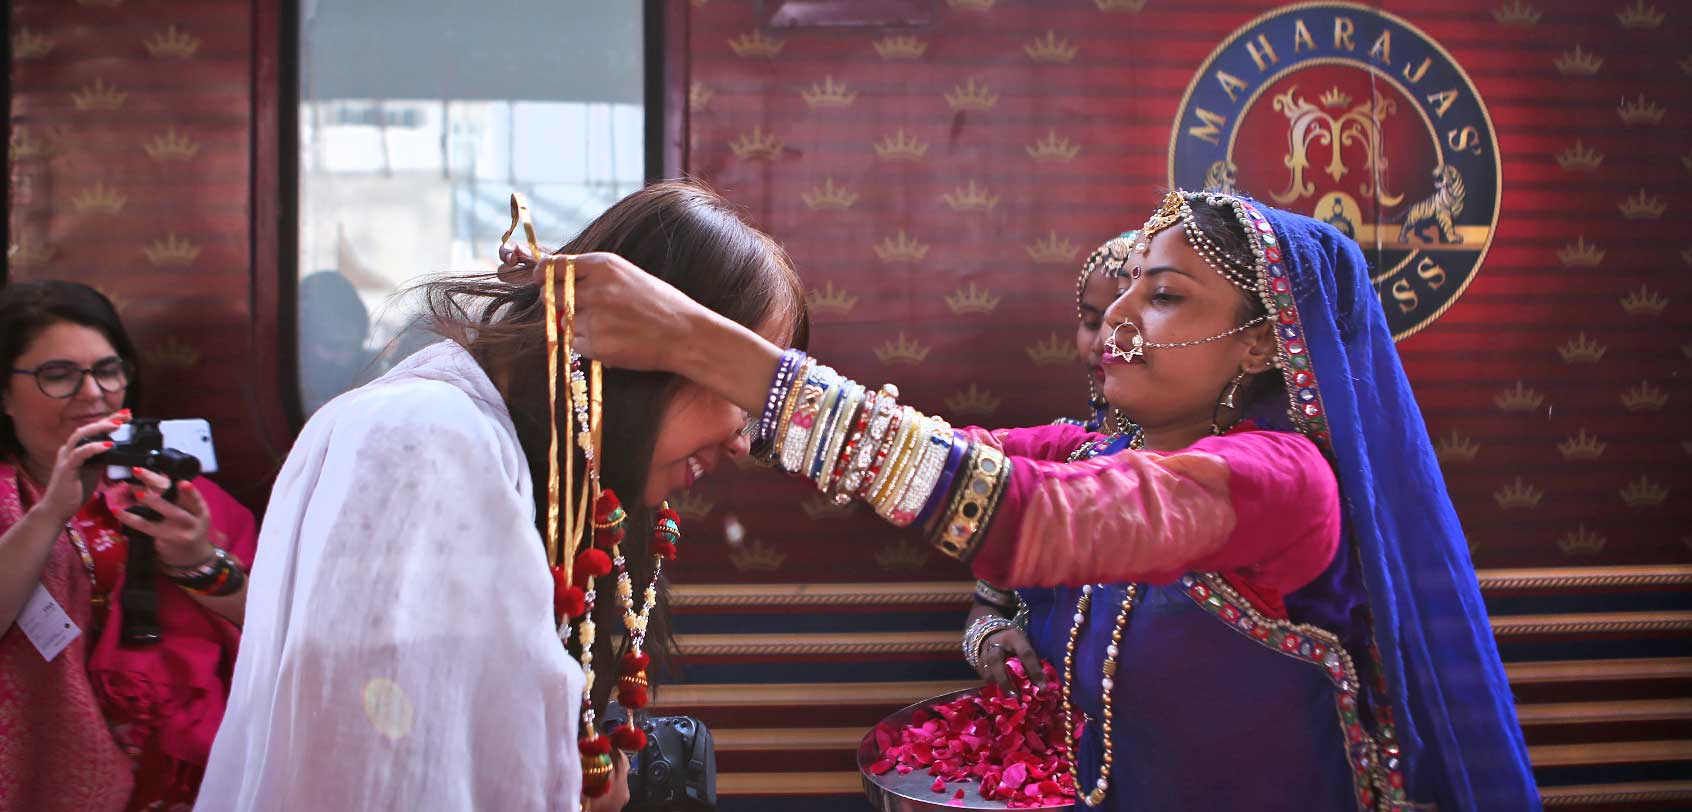 Welcome Ceremony of Maharajas Express